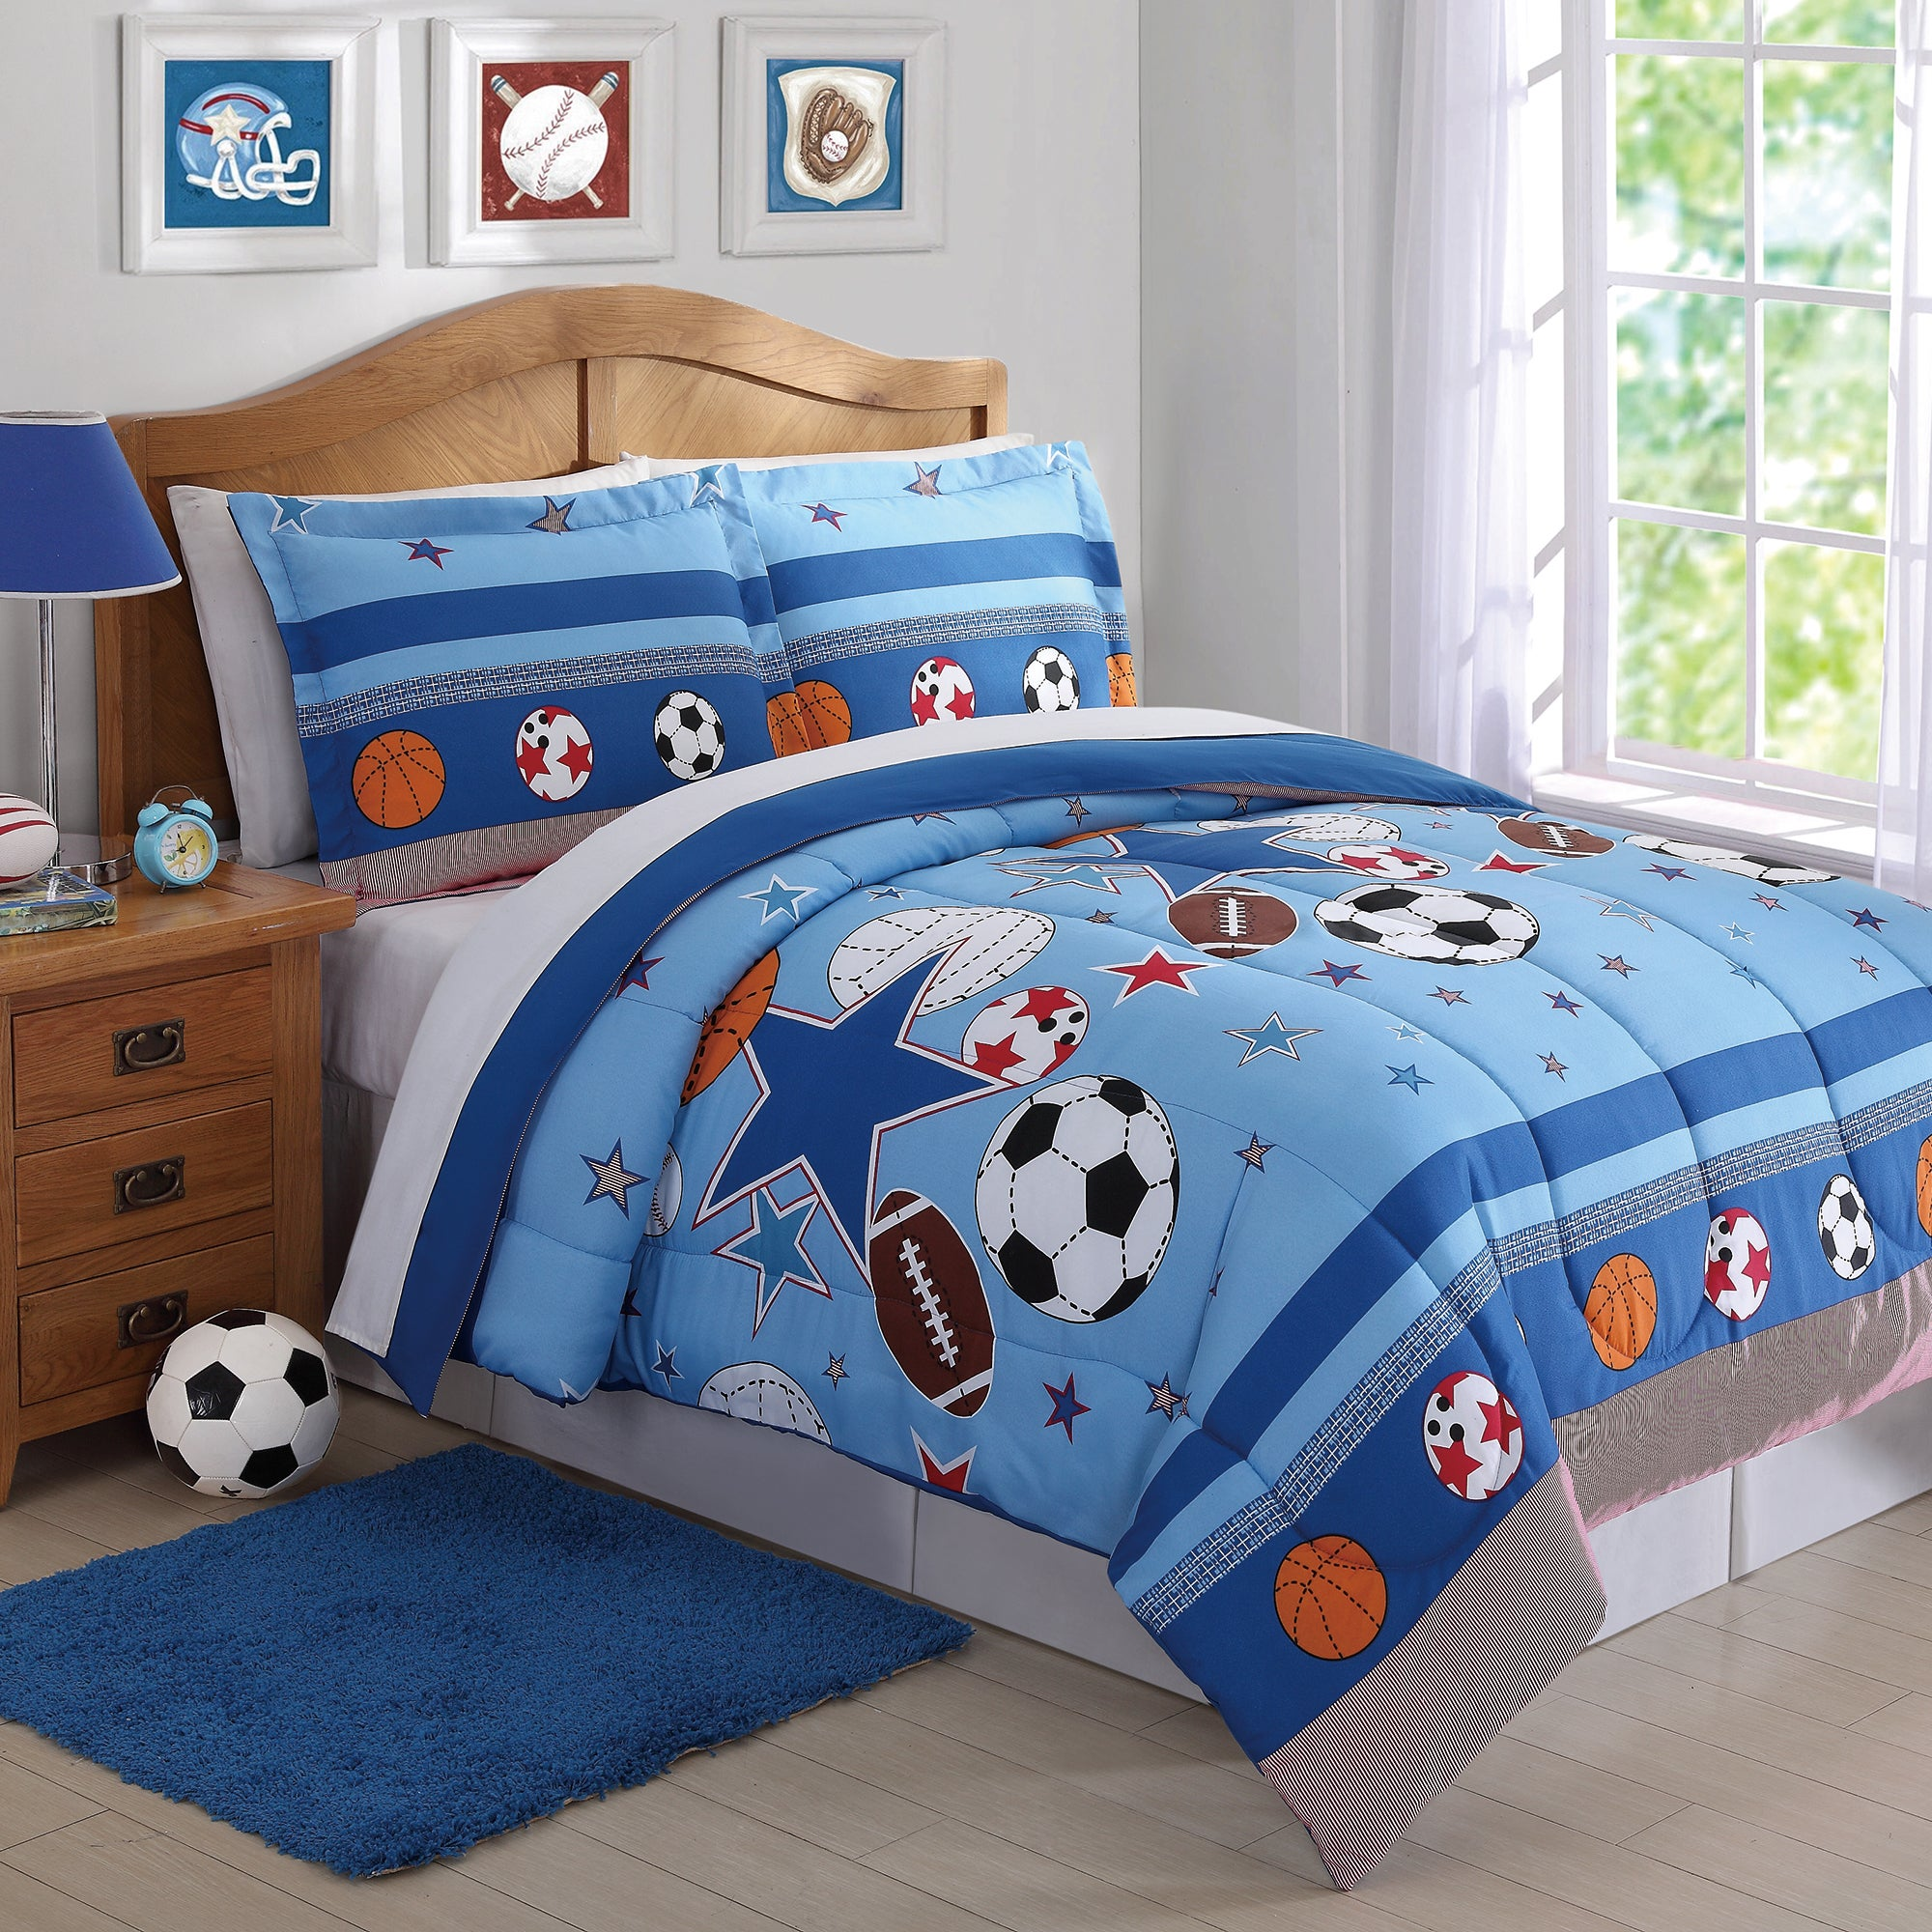 quilt space boys size sheets kids colorful full bed girls childrens sets and sheet set girl little single queen comforter sports curtain bedding white